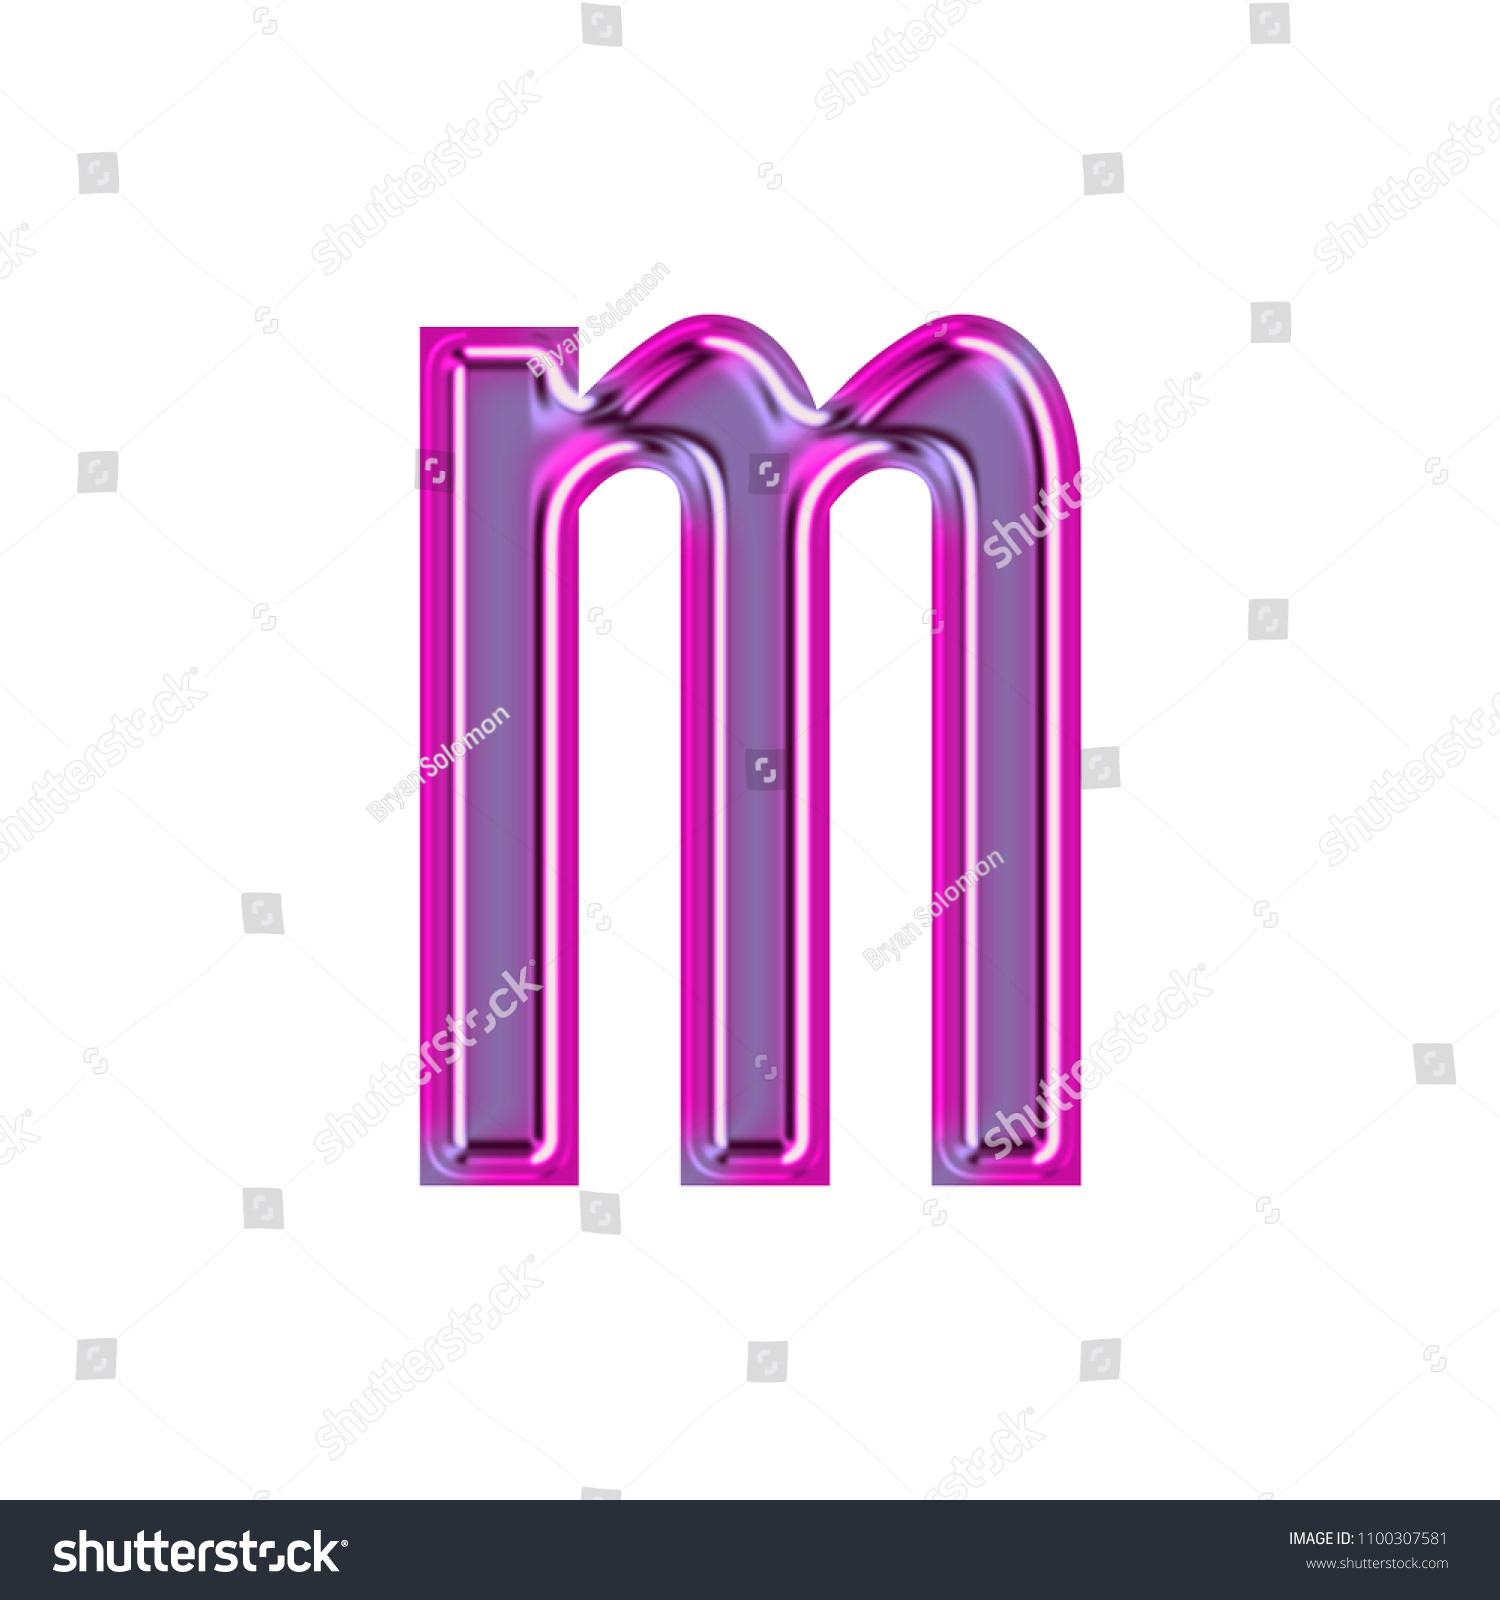 Glowing Metallic Pink Purple Color Letter Stock Illustration ...